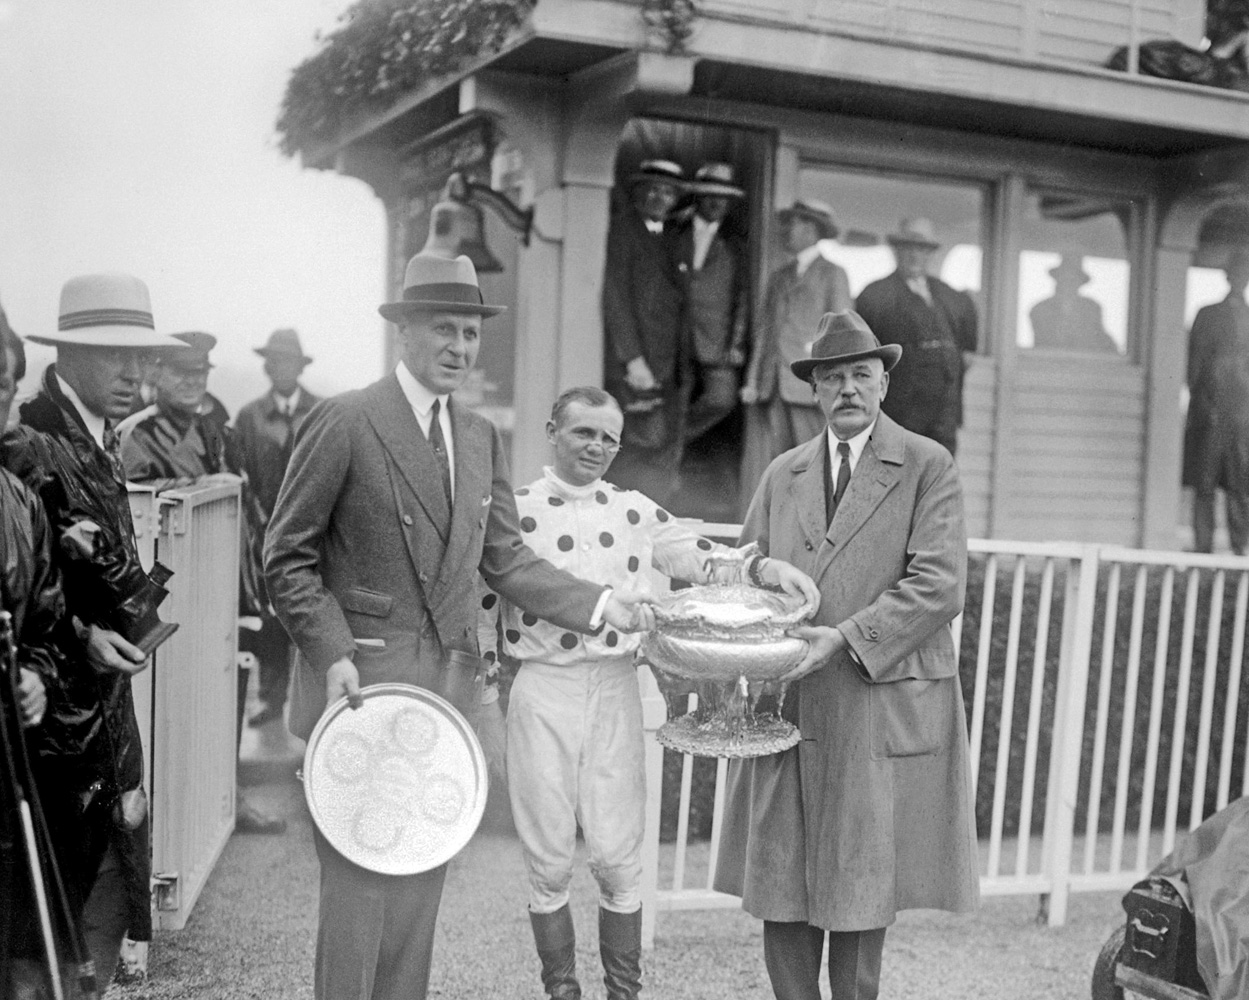 Jockey Earl Sande and owner William Woodward, Sr. receive the Belmont Stakes trophies from Joseph E. Widener after Gallant Fox's victory in 1930 (Keeneland Library Cook Collection)